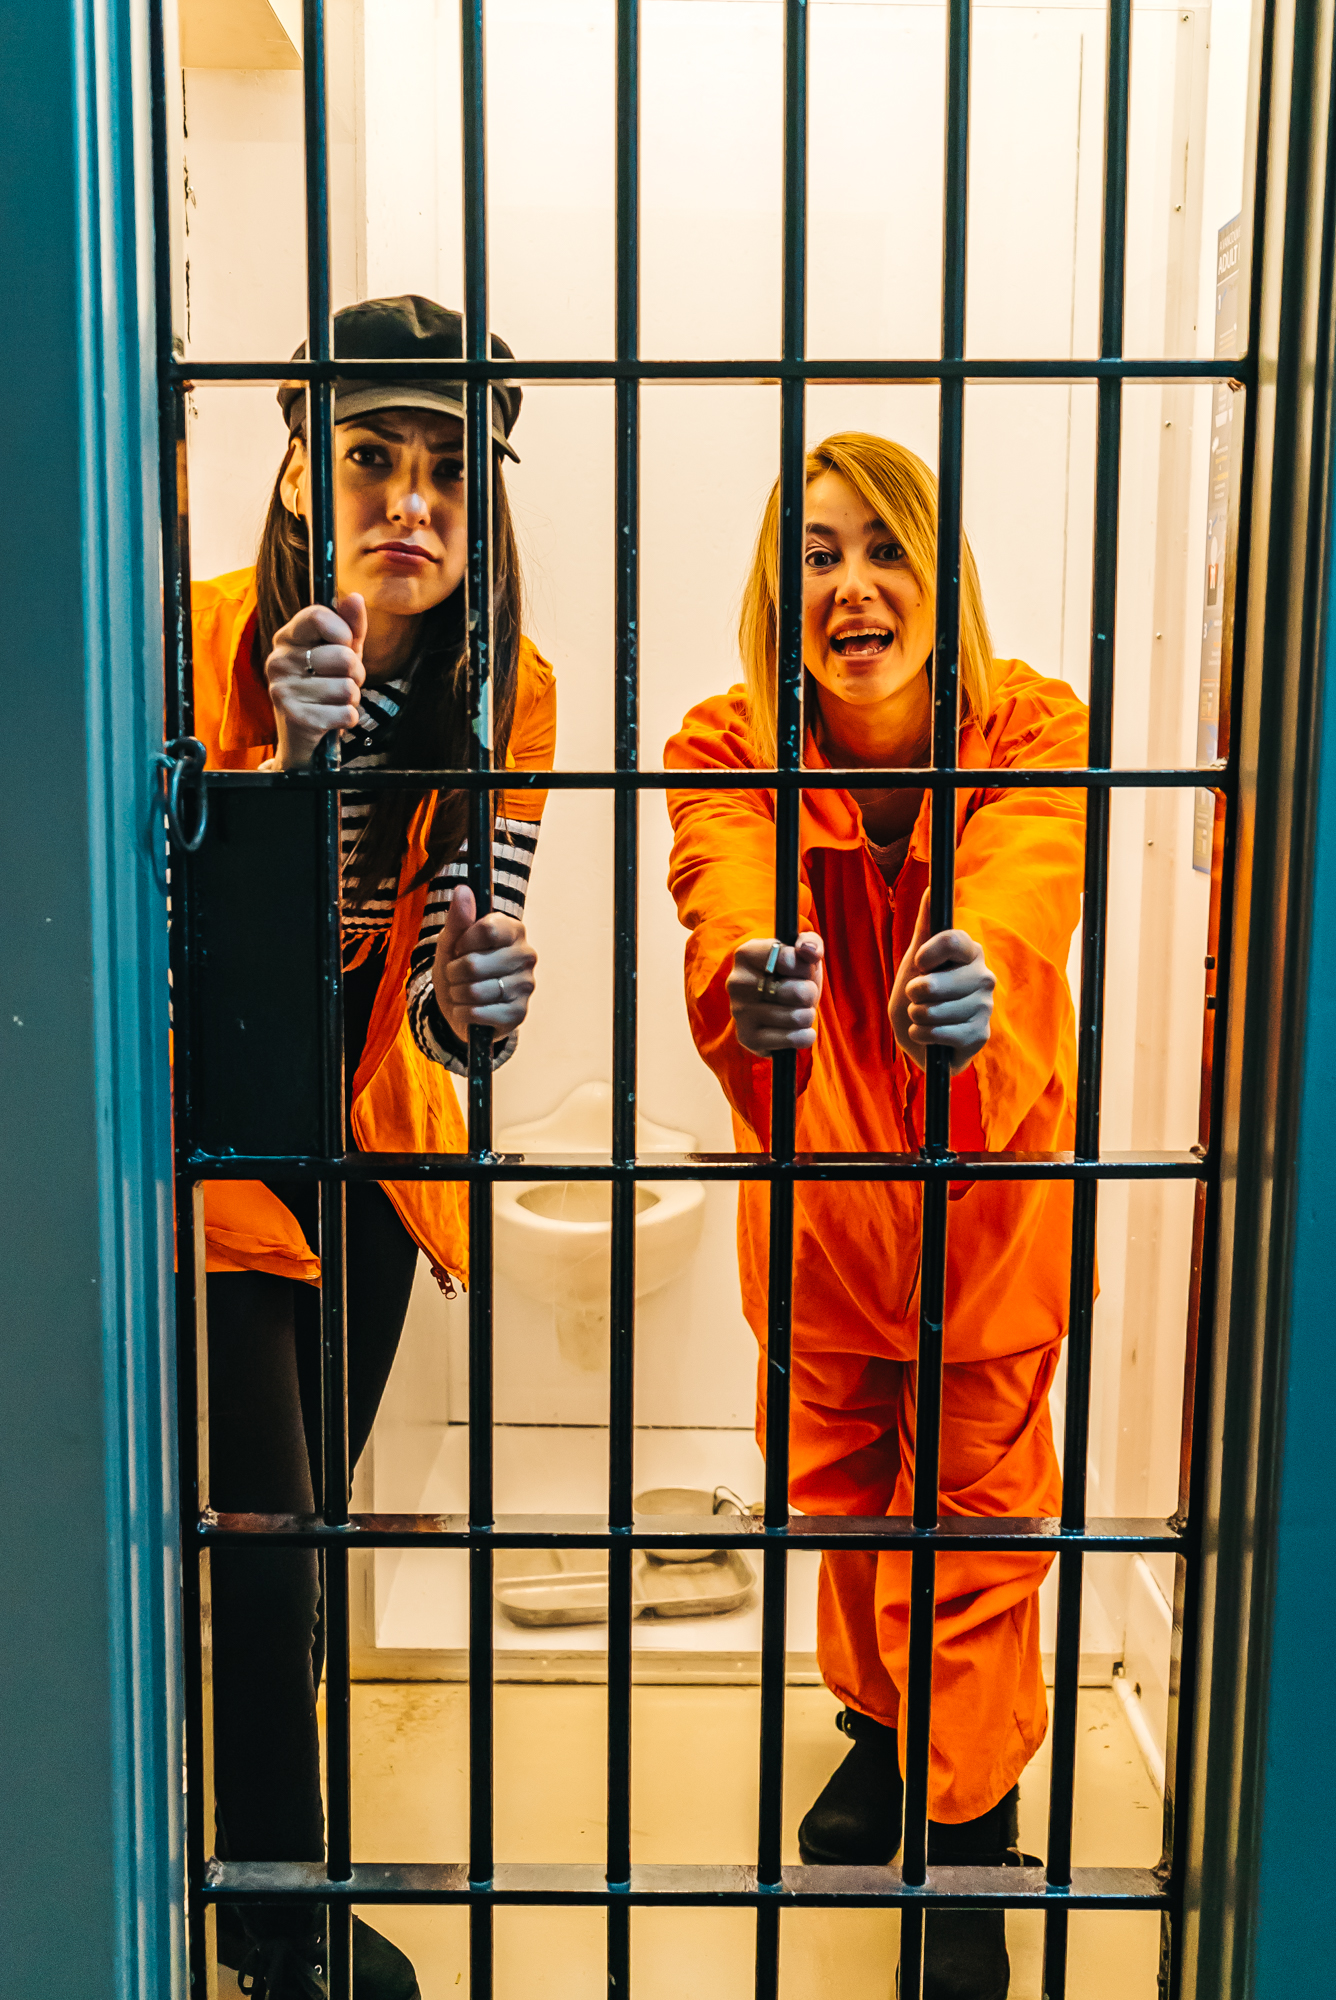 Good times in that jail cell